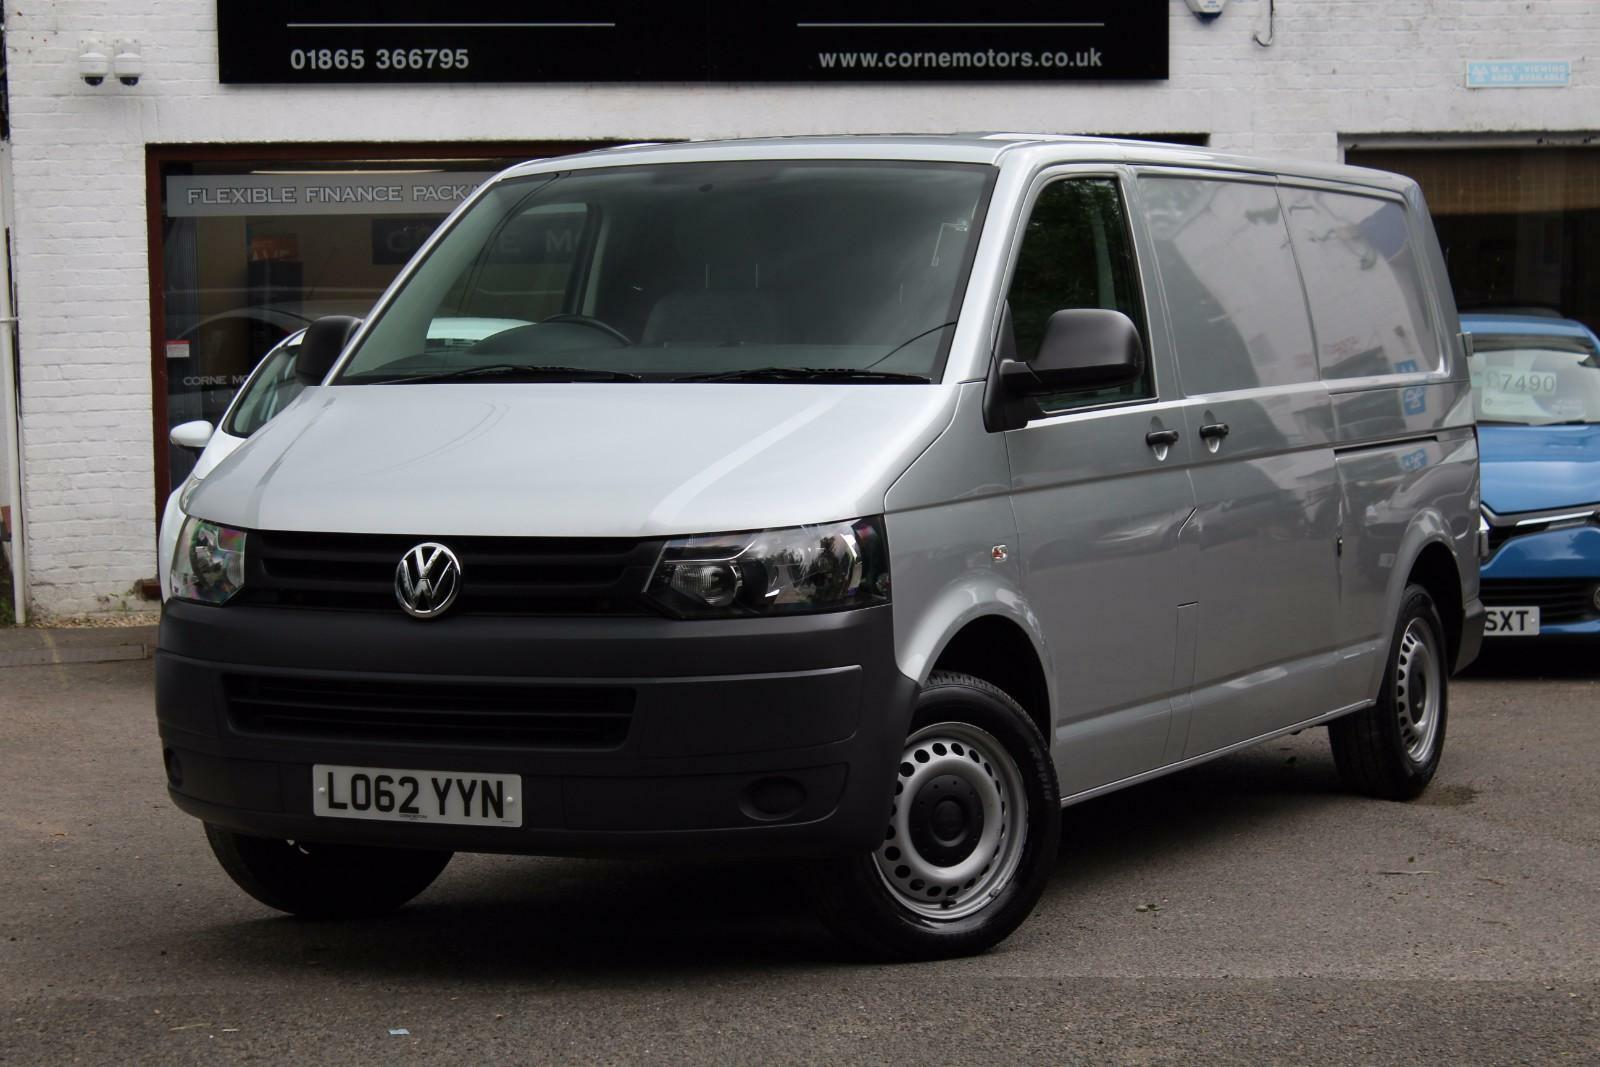 2013 volkswagen transporter t5 2 0 tdi 140ps 6 speed lwb. Black Bedroom Furniture Sets. Home Design Ideas